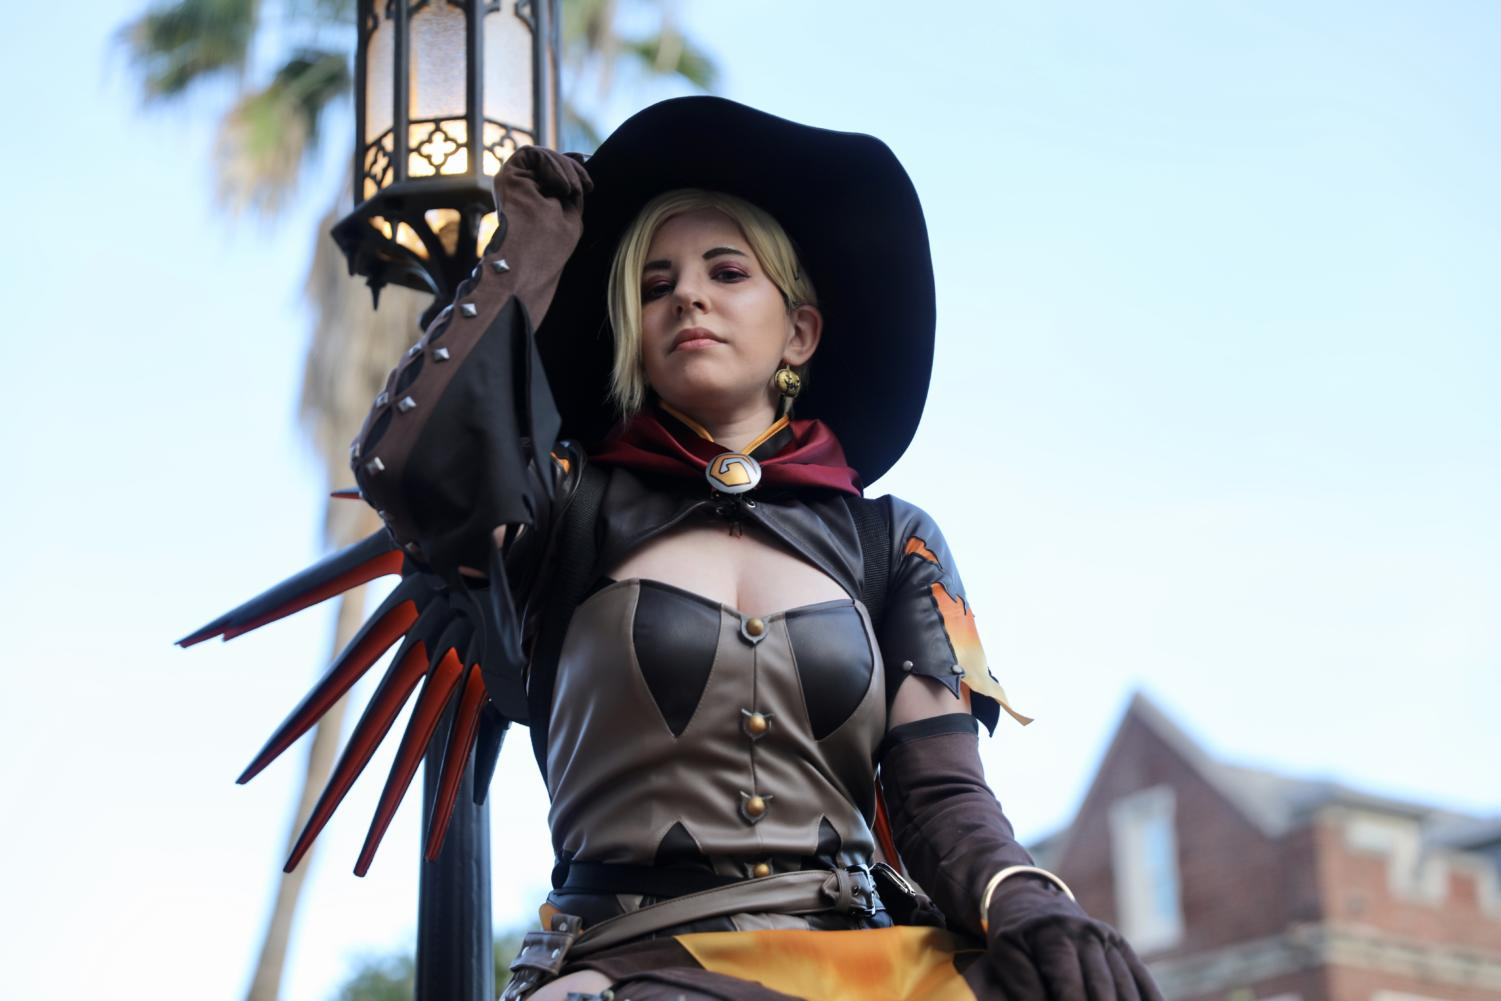 Kris D'Arcangelo dresses up as Mercy from the video game, Overwatch. D'Arcangelo says she finds a welcoming community within cosplayers. Photo credit: Andres Fuentes